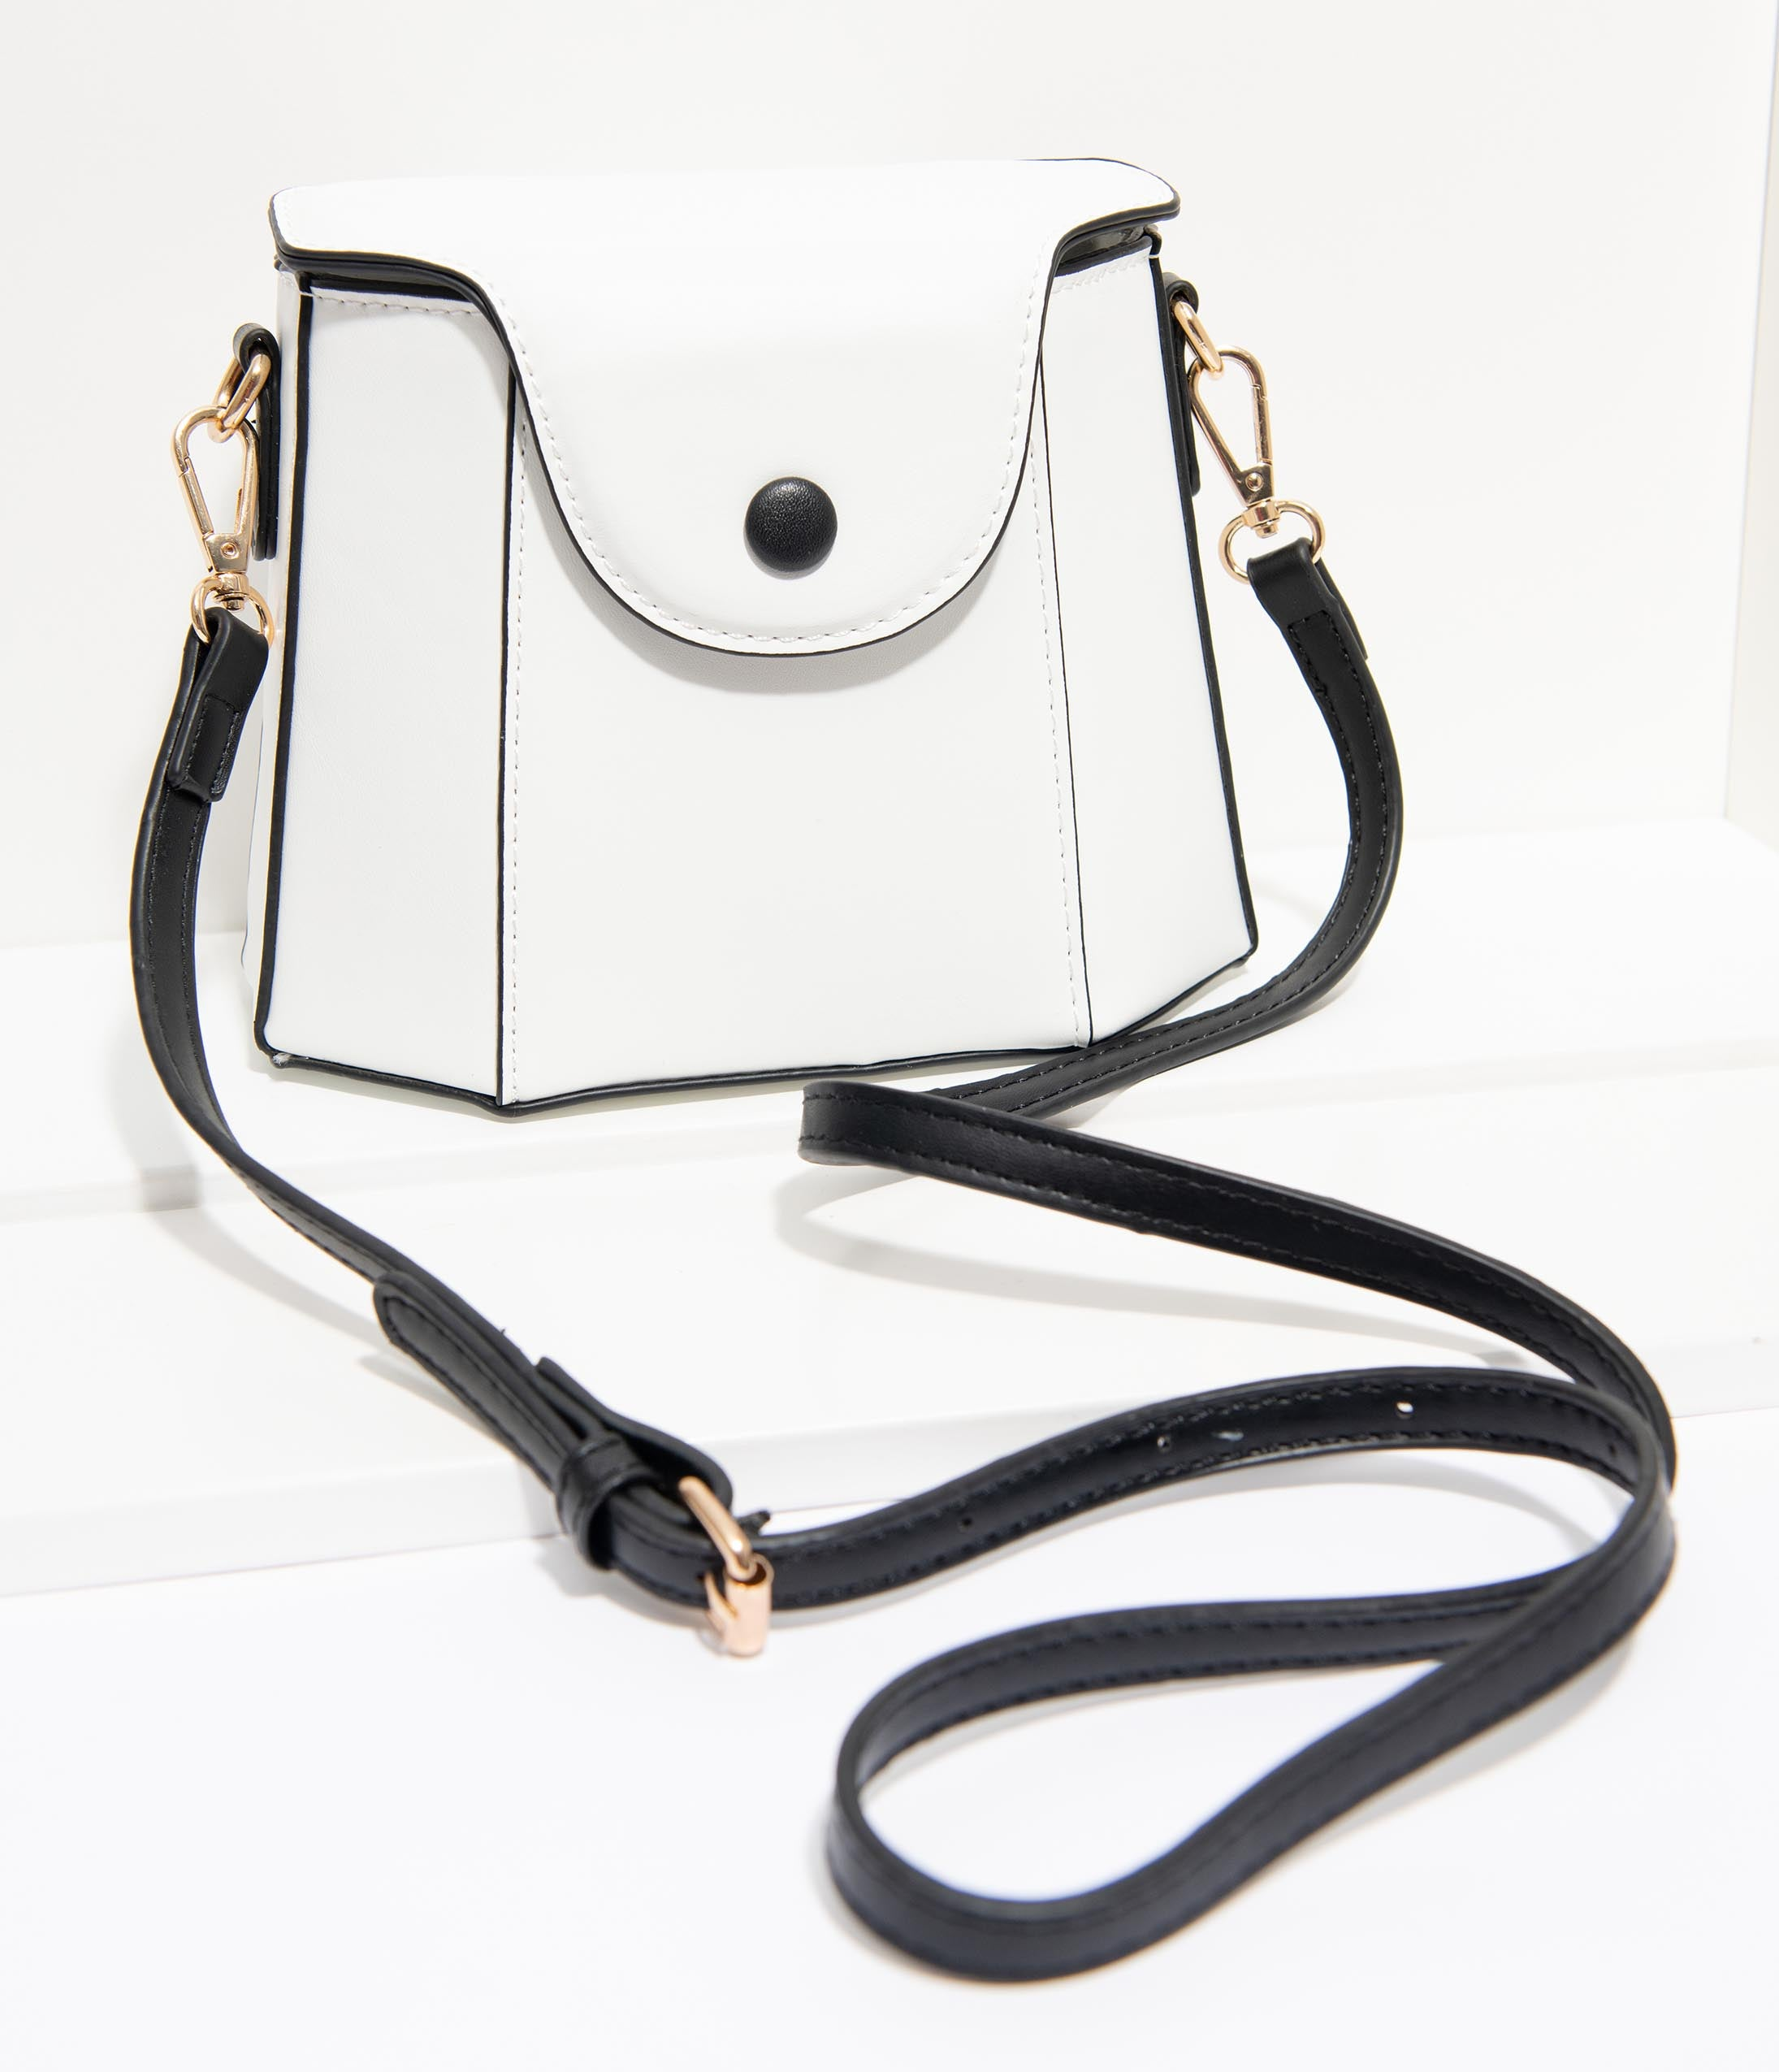 60s Mod Clothing Outfit Ideas Unique Vintage White Leatherette Geometric Crossbody $44.00 AT vintagedancer.com